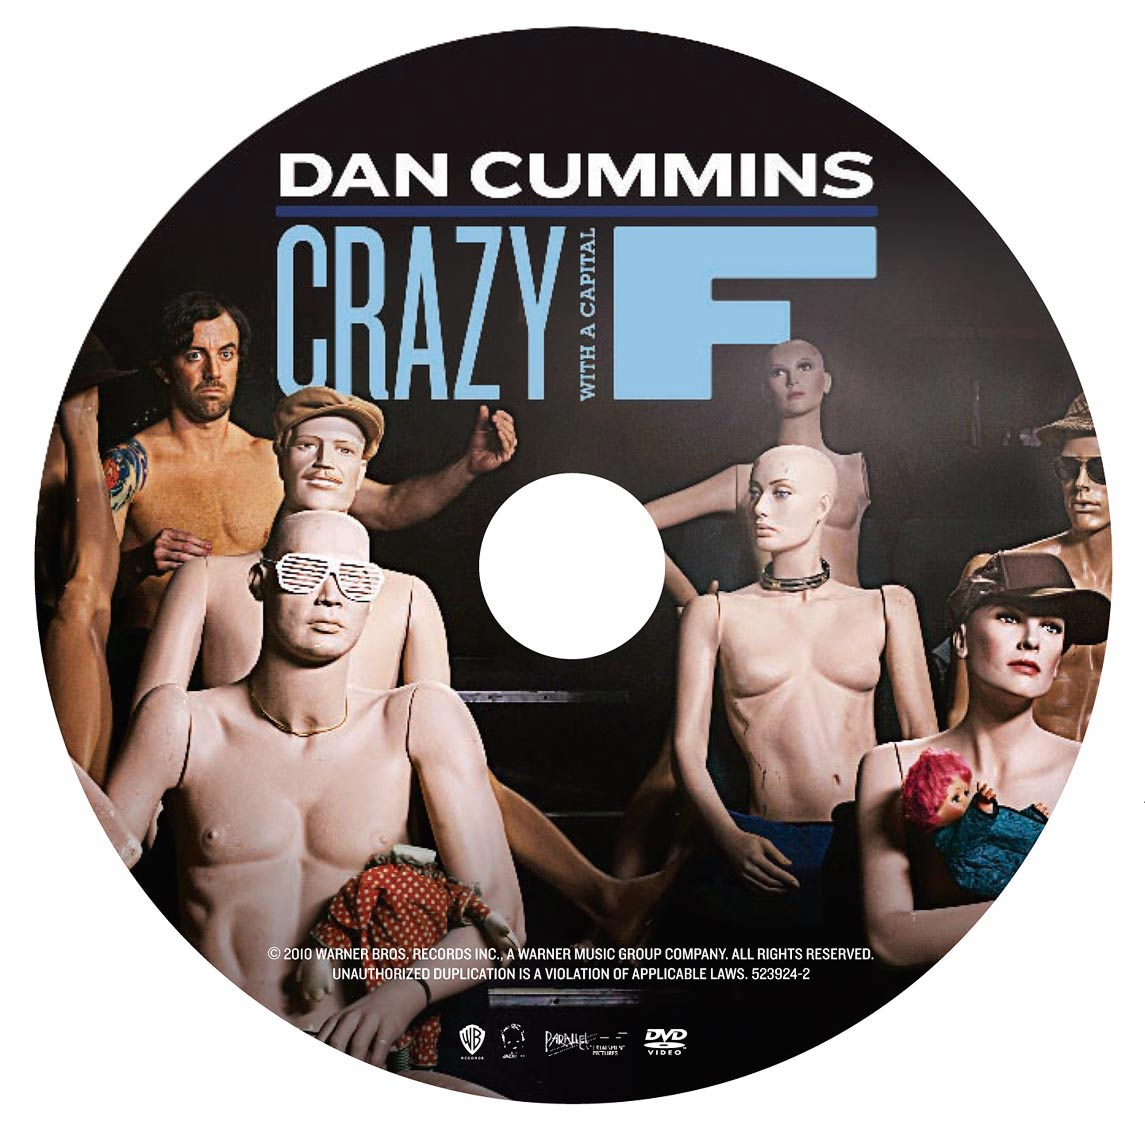 DAN_CUMMINS_CRAZY_DVDlabel_r1.jpg